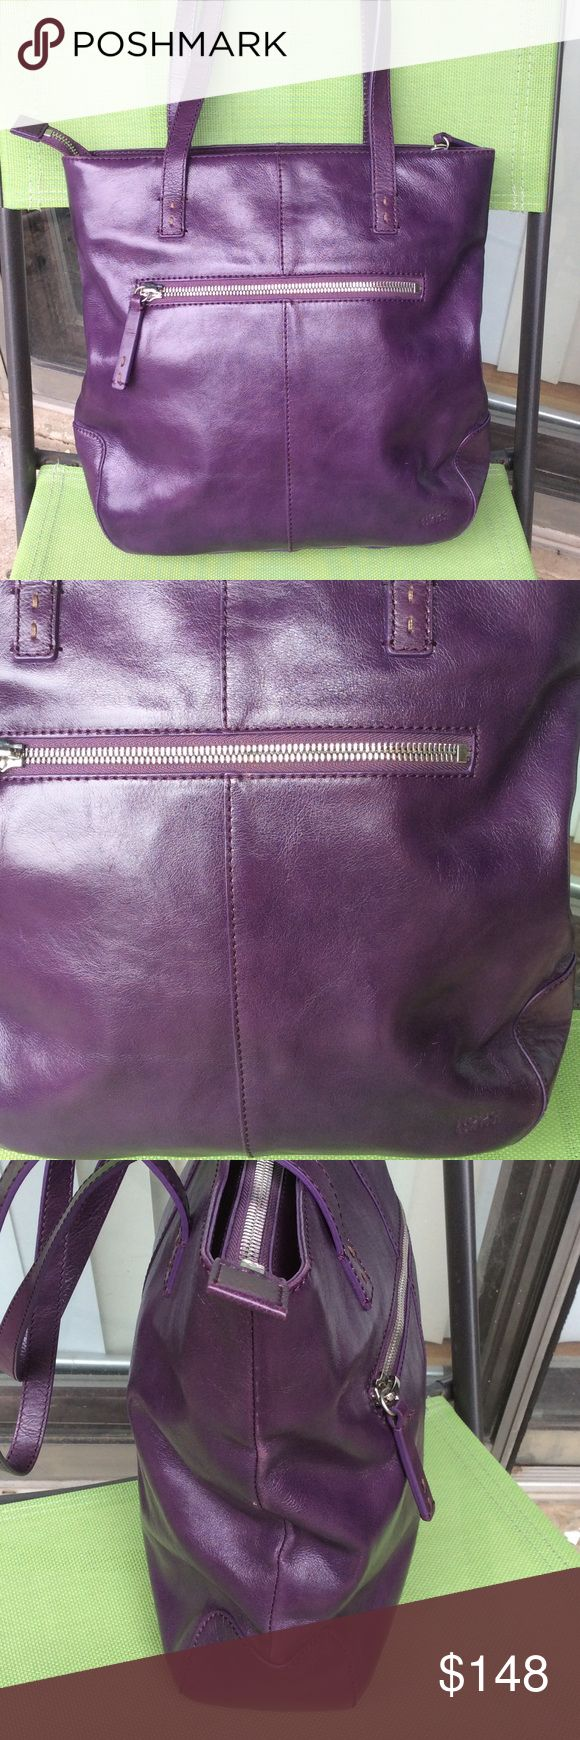 Eggplant kitchen accessories - Hobo International Eggplant Color Leather Bag